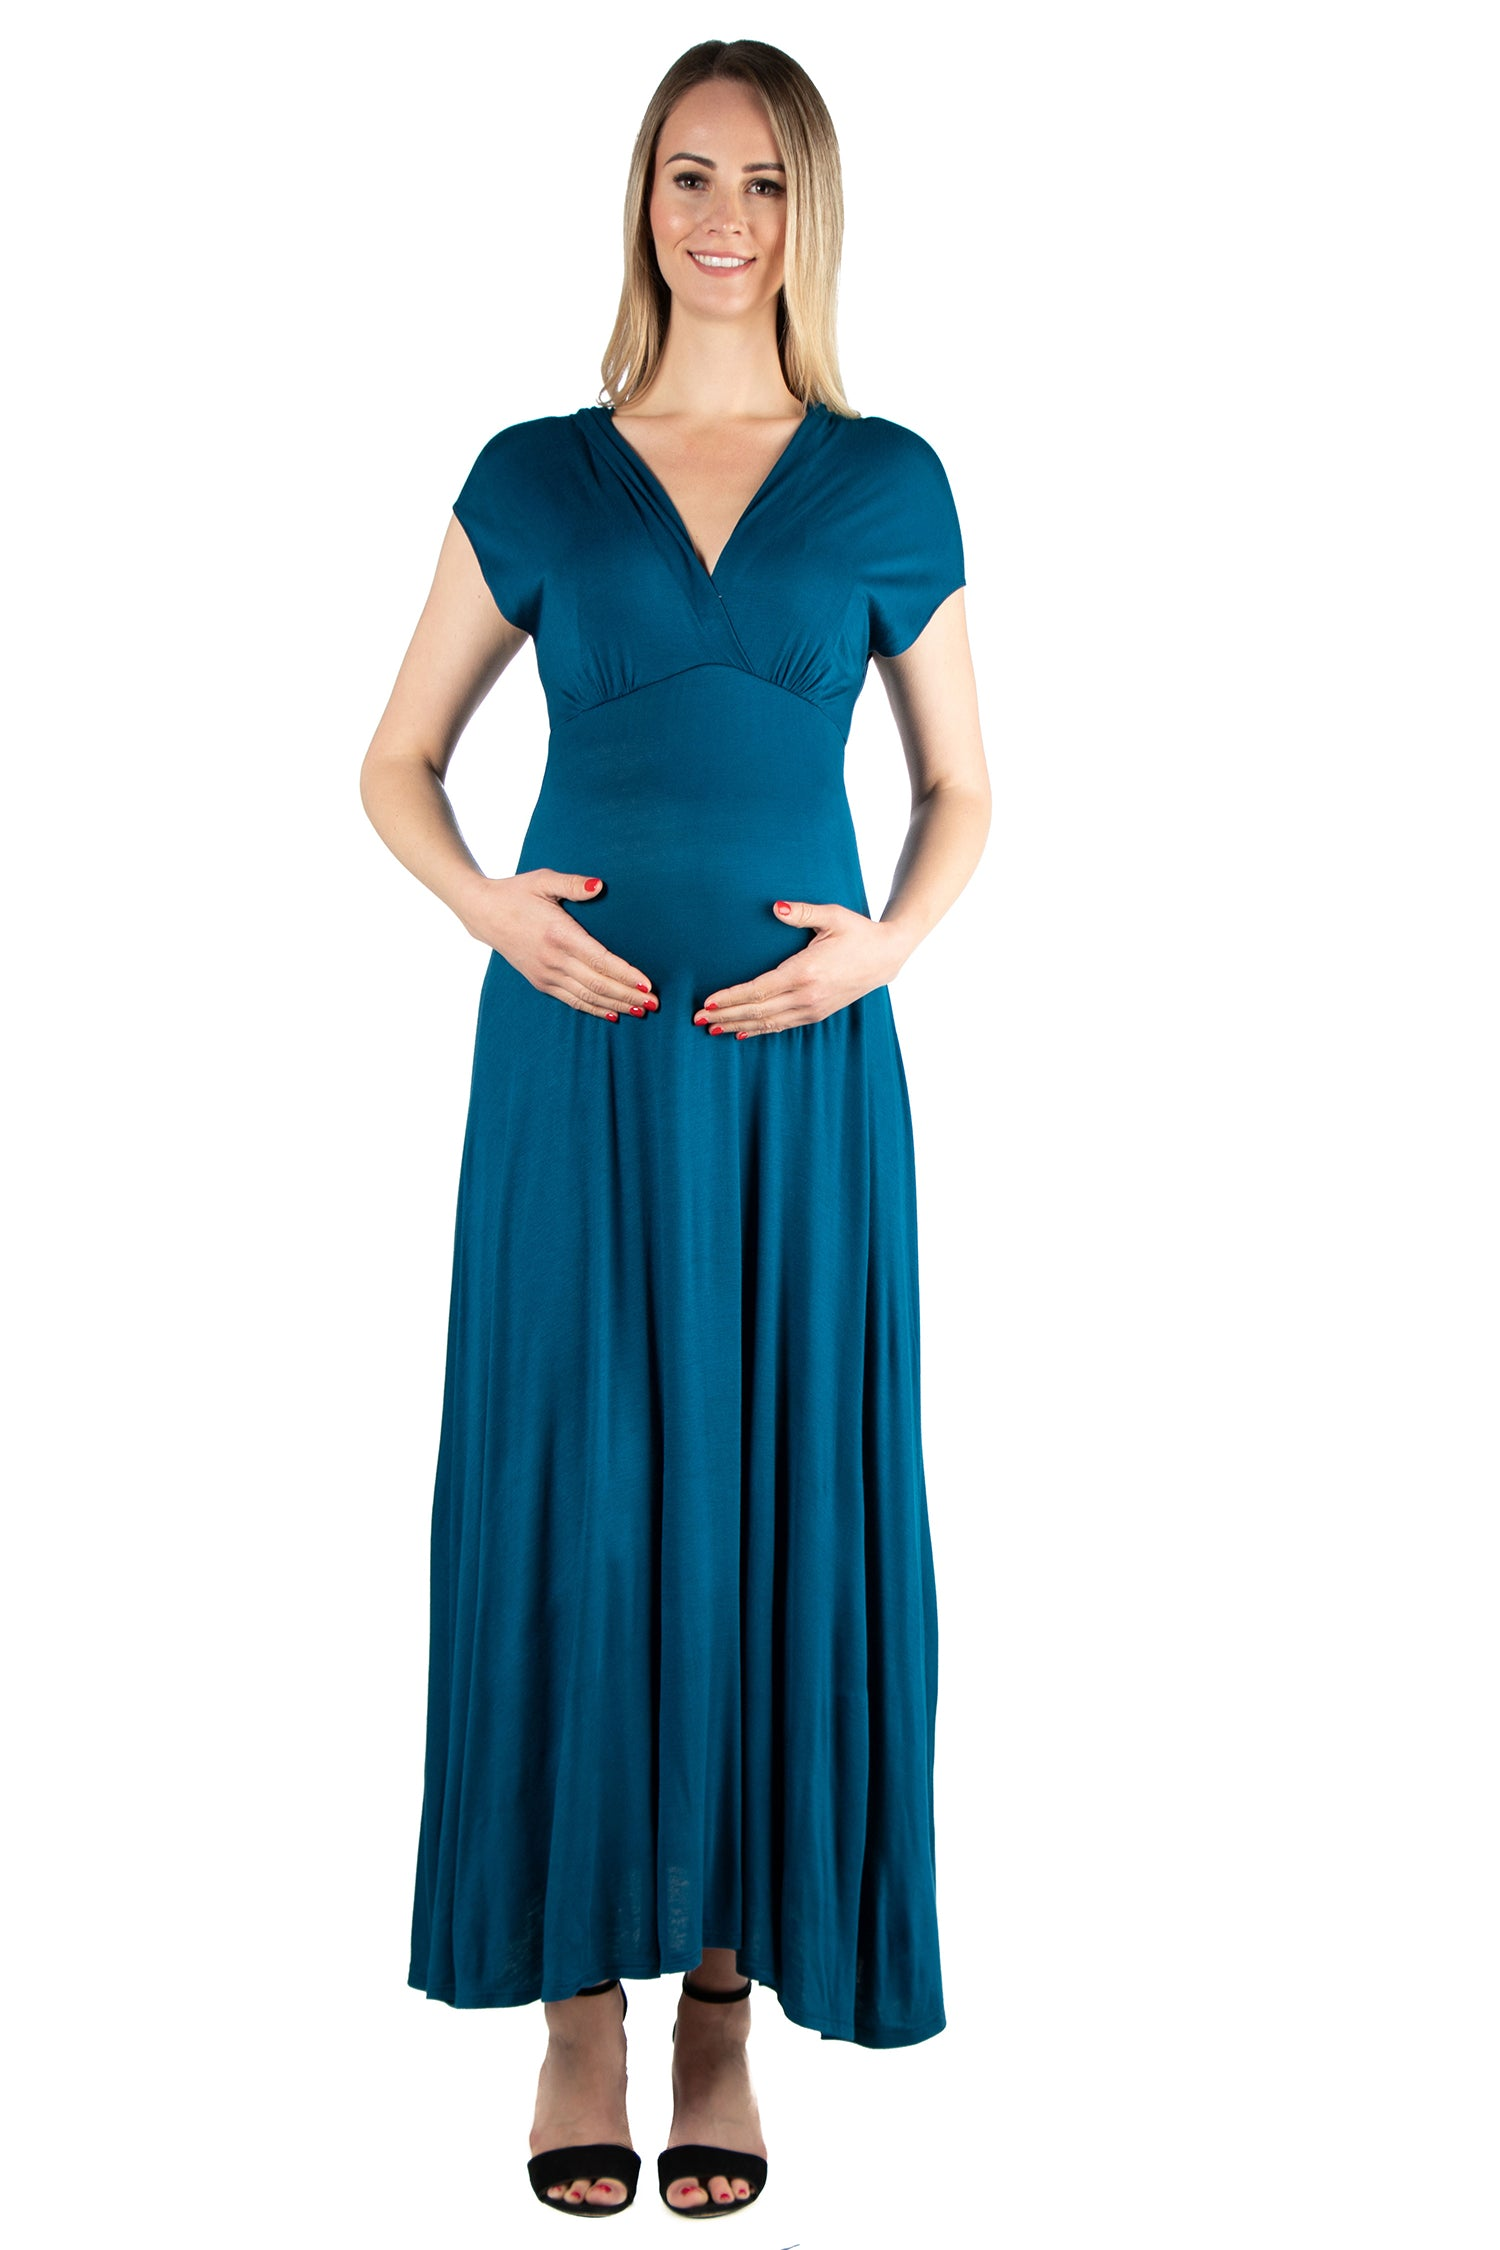 24seven Comfort Apparel Empire Waist V Neck Maternity Maxi Dress-DRESSES-24Seven Comfort Apparel-WINE-S-24/7 Comfort Apparel